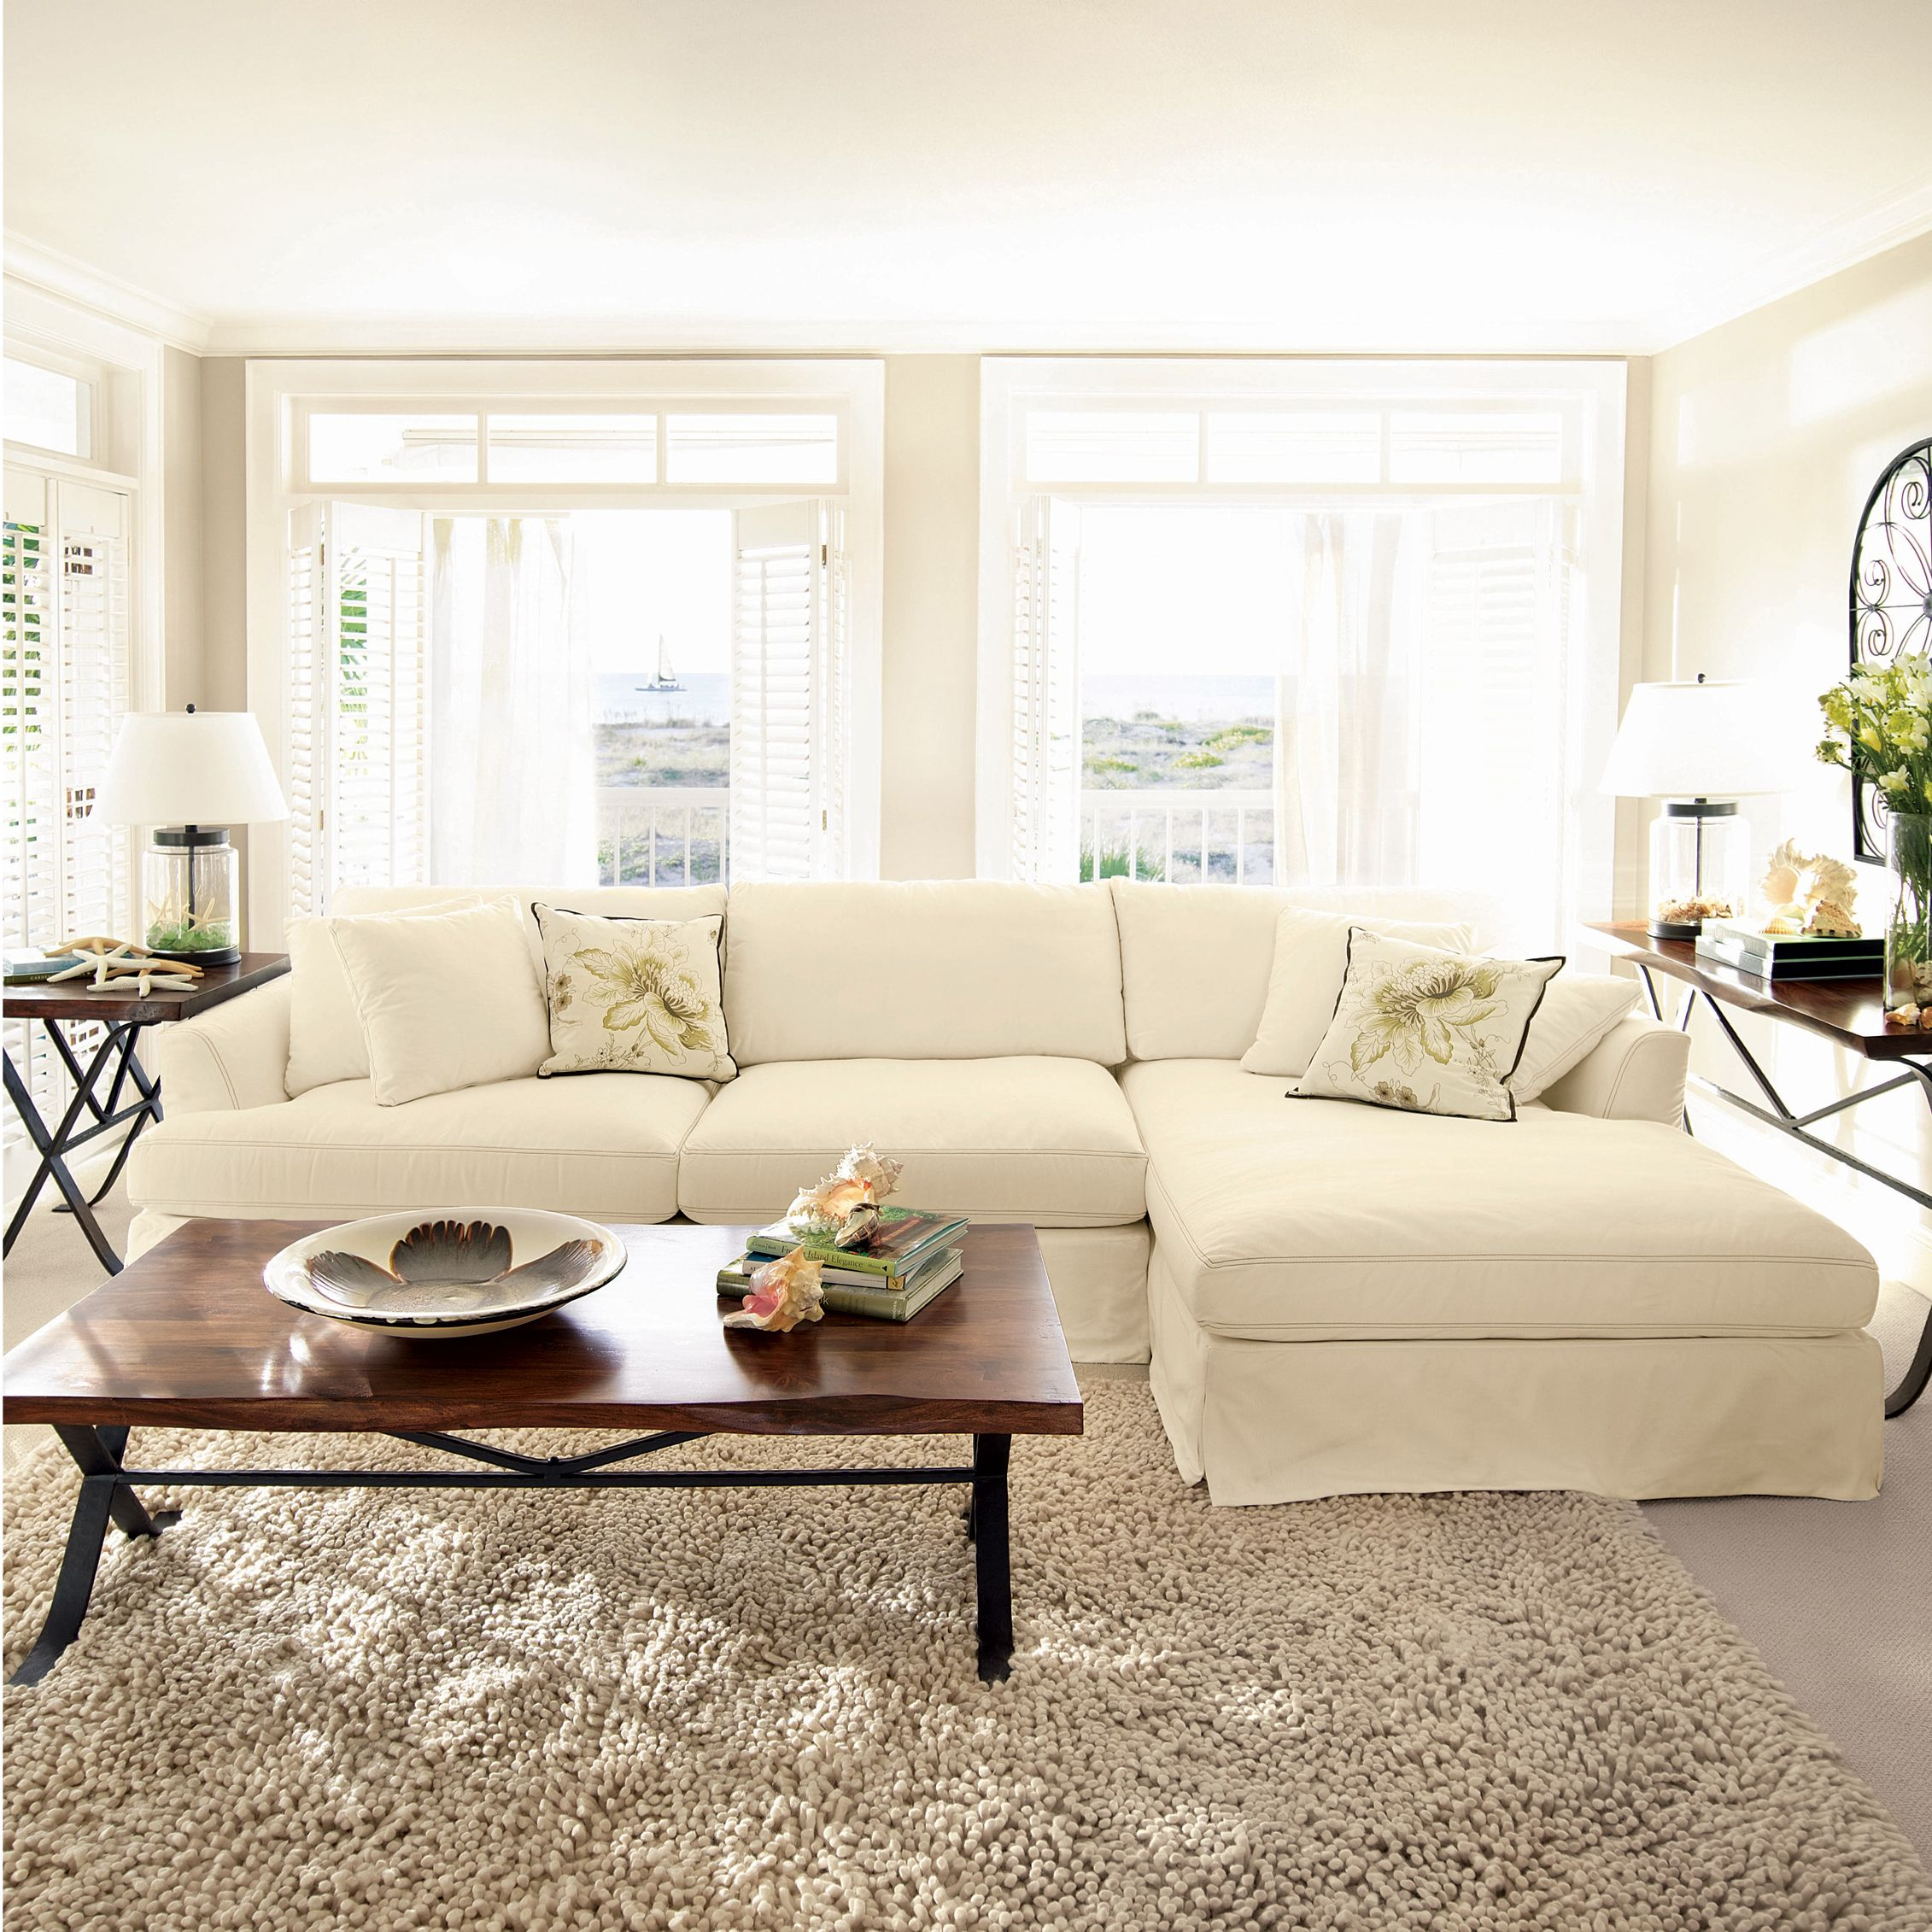 Peachy Love This Sectional But It Is Slightly Too Large We Would Andrewgaddart Wooden Chair Designs For Living Room Andrewgaddartcom